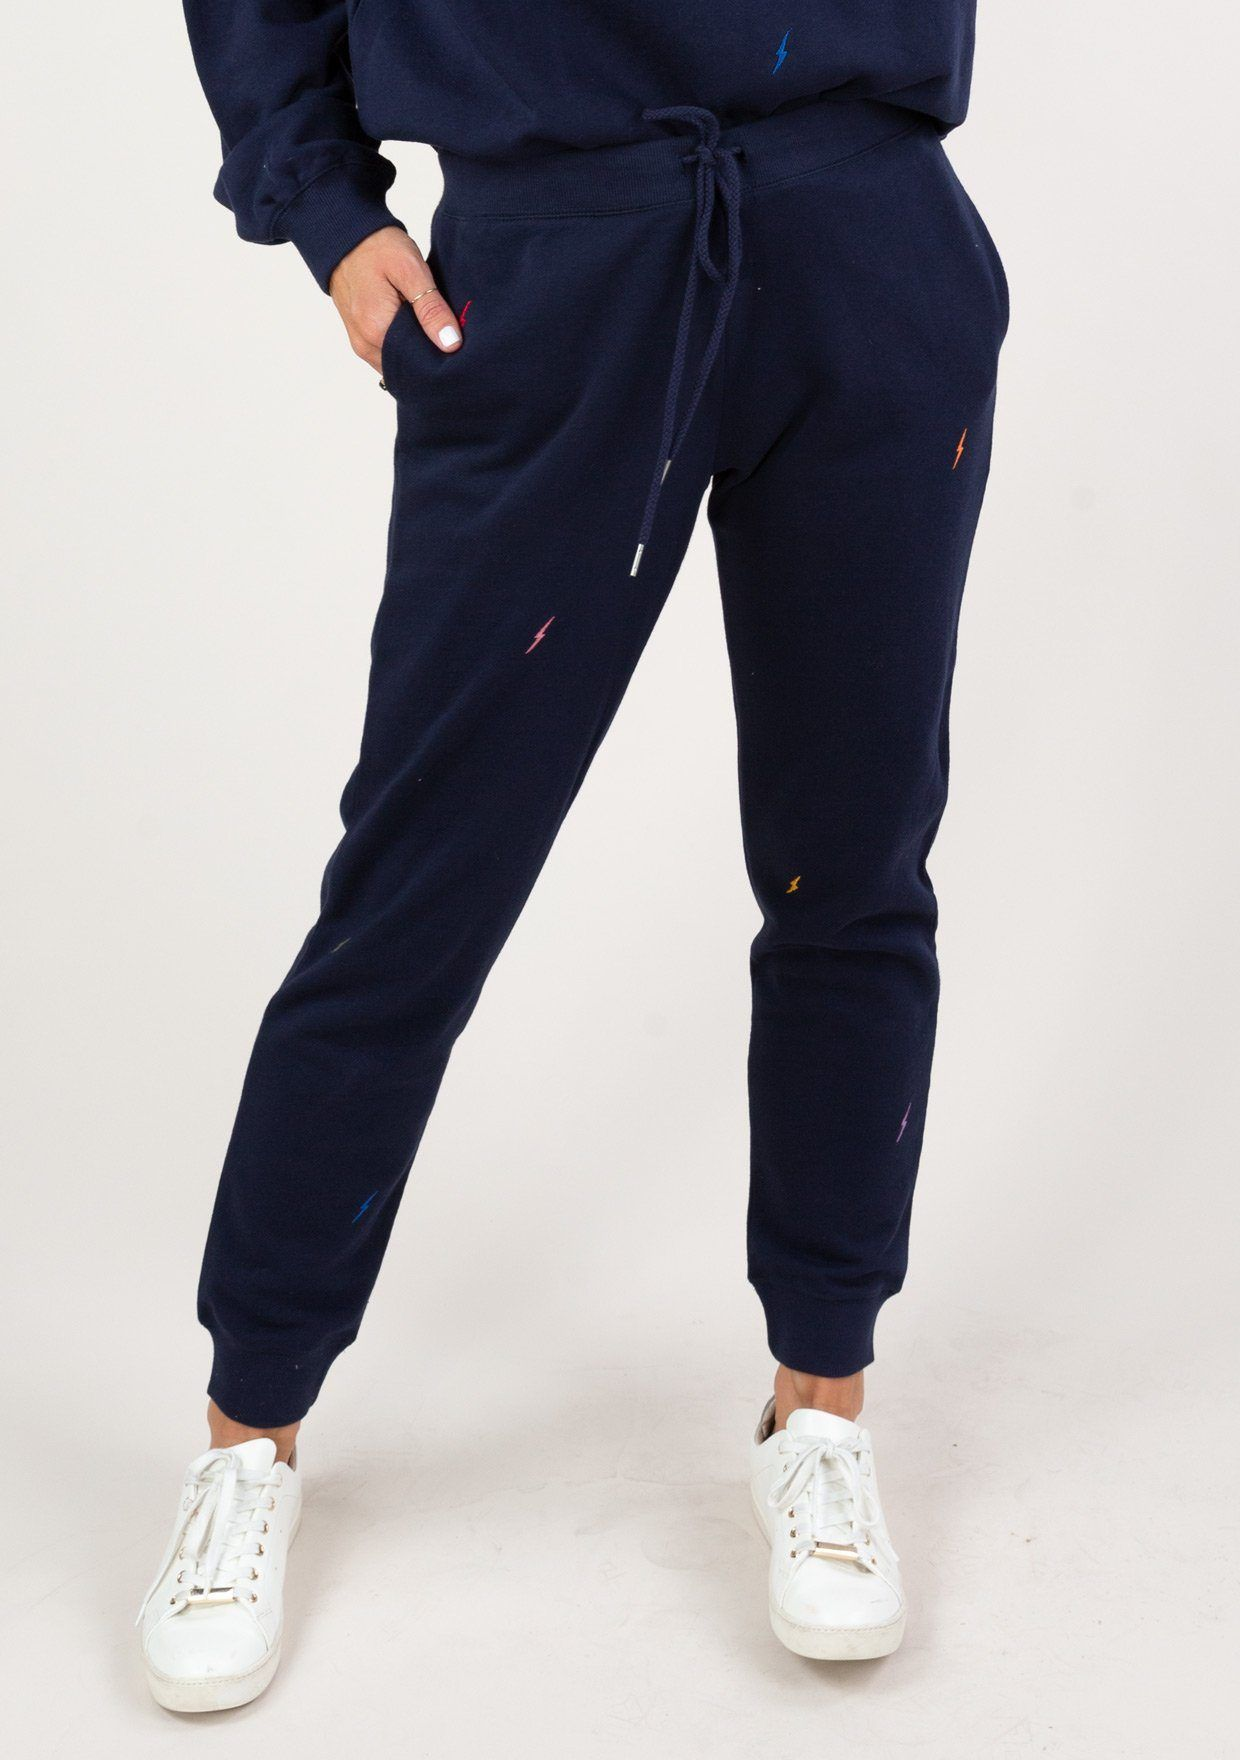 An essential sweatpant with an electrifying twist! Our soft and cozy joggers features a drawstring waistband, side pockets, and playful embroidered lightning bolts throughout. Make it a set with the Lightning Bolt Embroidered Sweatshirt! Embroidered lightning bolt details Relaxed fit Full length Side pockets Drawstring waist Model is 5'9, wearing a size S.Style: I-30142K-RDR